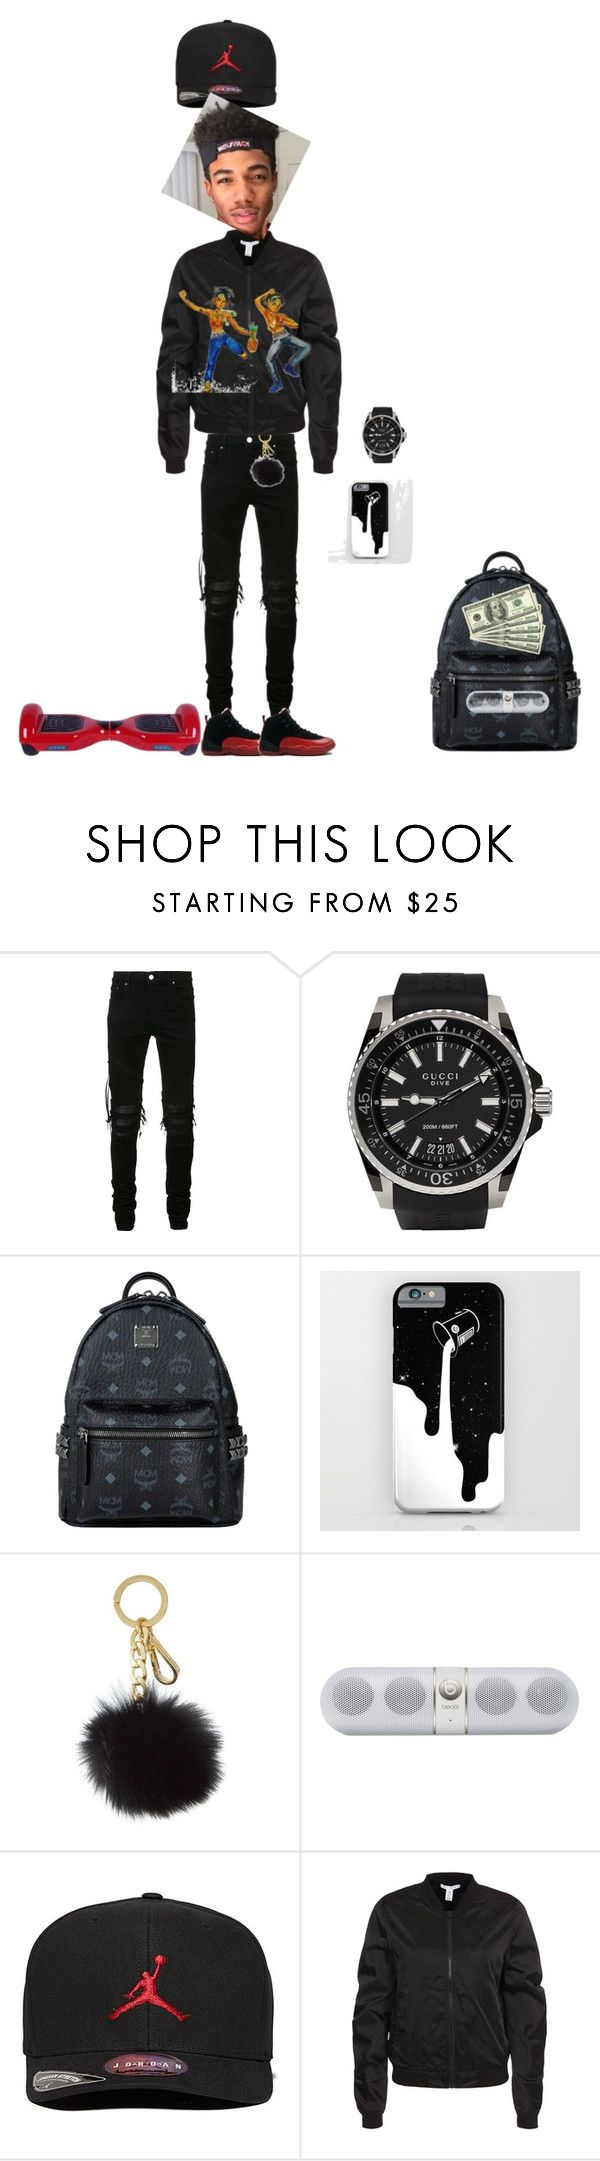 """me 12 yrs old-mike"" by dm4life ❤ liked on Polyvore featuring AMIRI, Gucci, MCM, Michael Kors, Beats by Dr. Dre, Jordan Brand, NLY Trend, men's fashion and menswear"